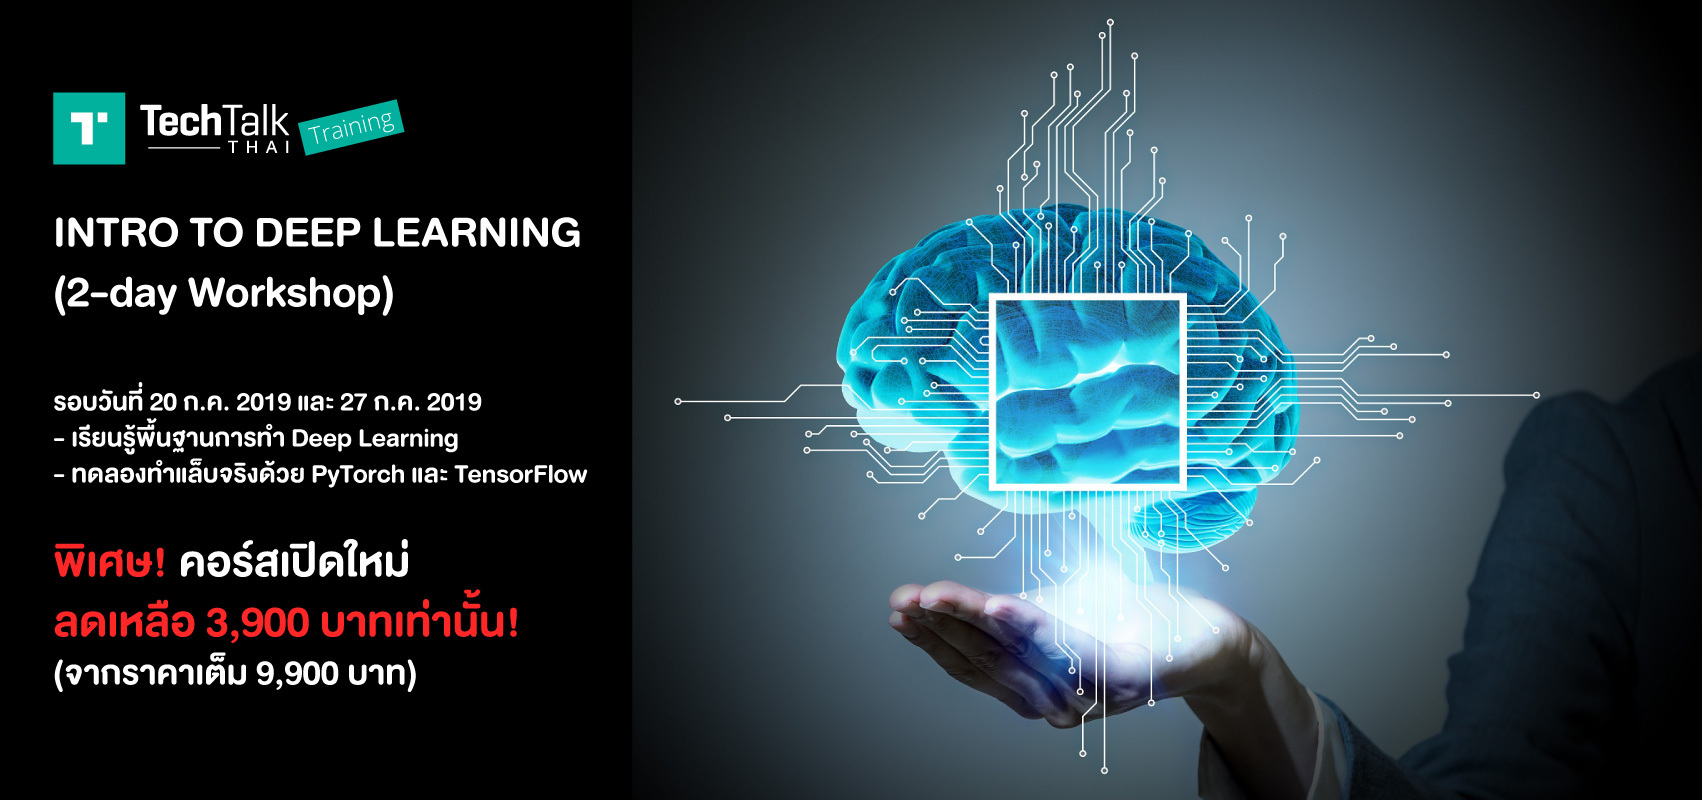 Ttt training intro to deep learning 2019 07 banner 03